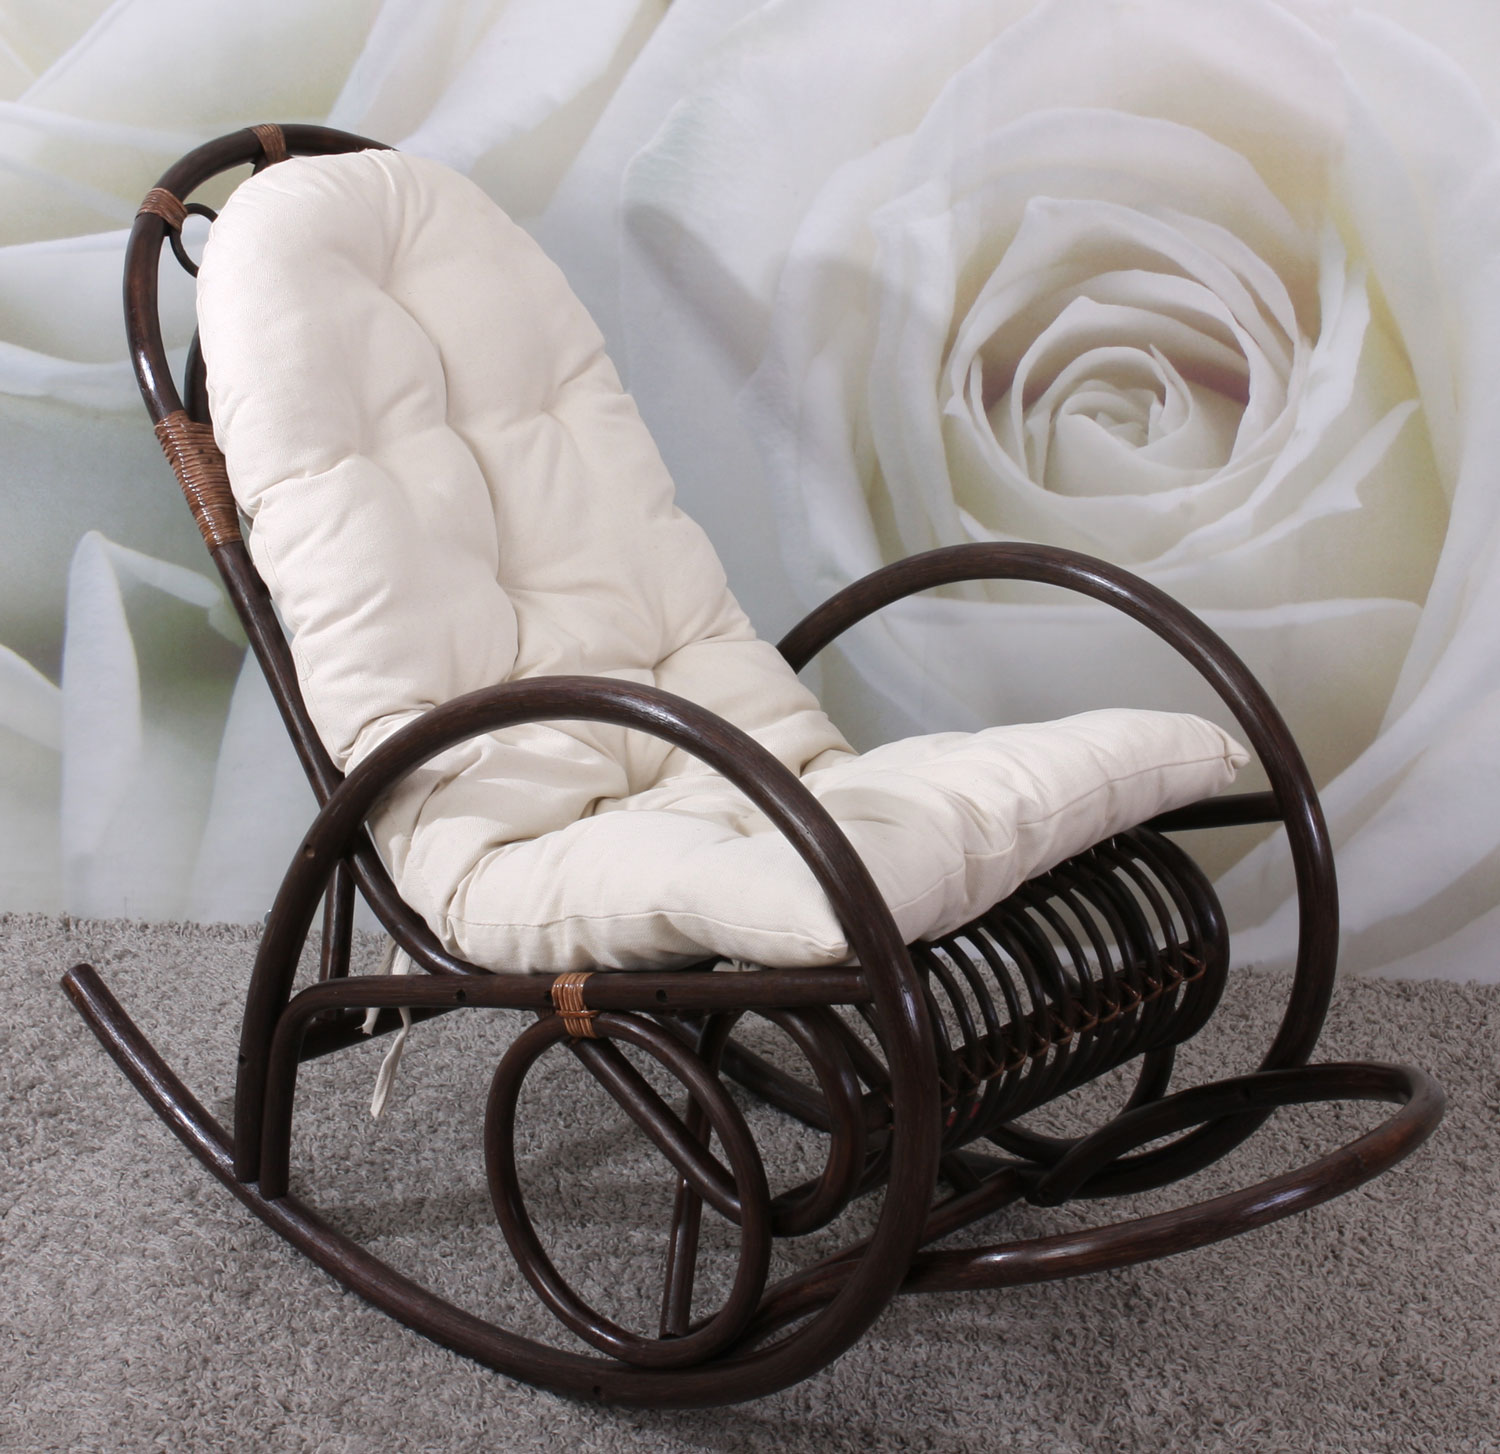 Chaise Moins Cher Rocking Chair Daisy Avec Coussin Microfibre Rockgch-daisy